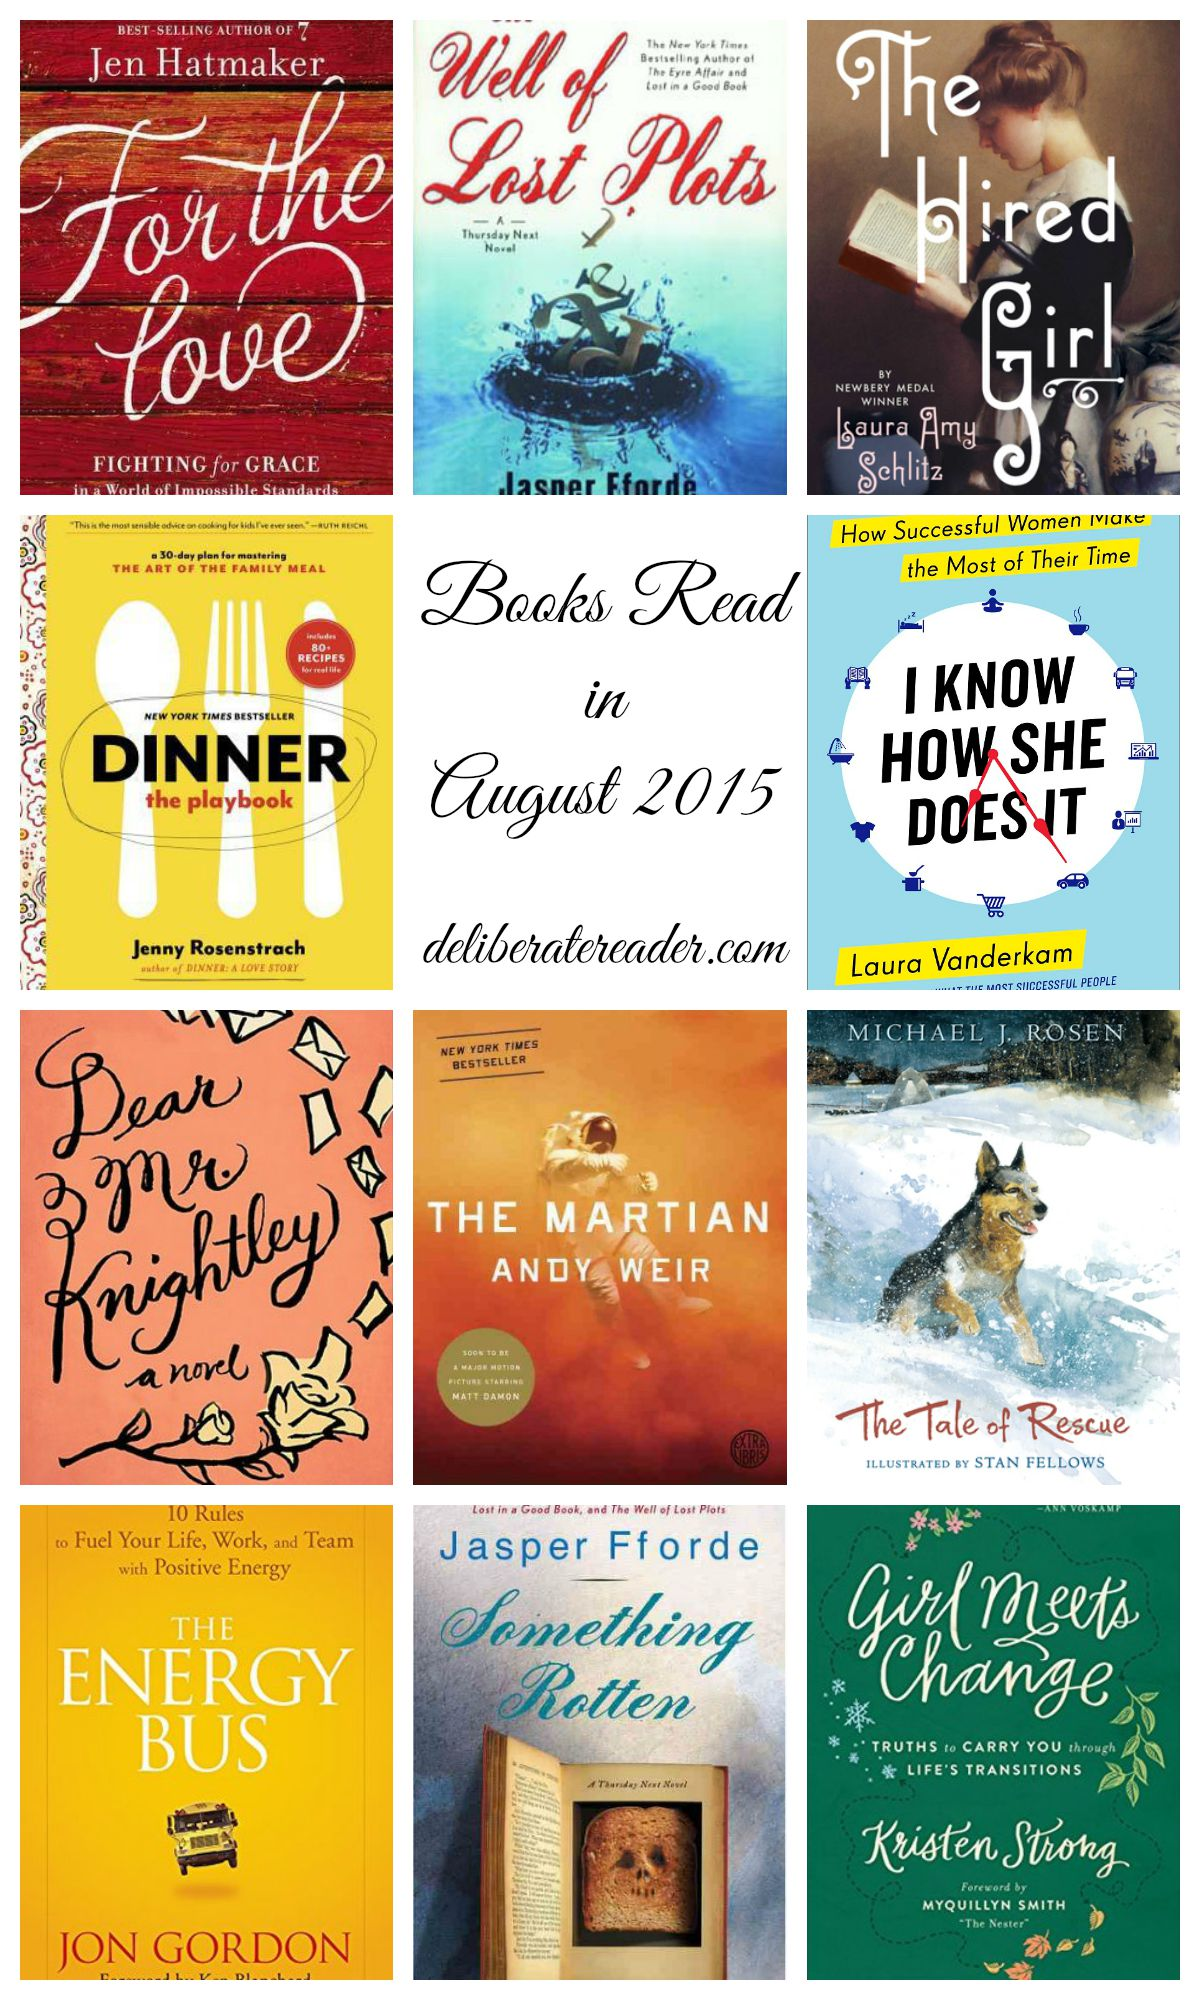 Books Read in August 2015